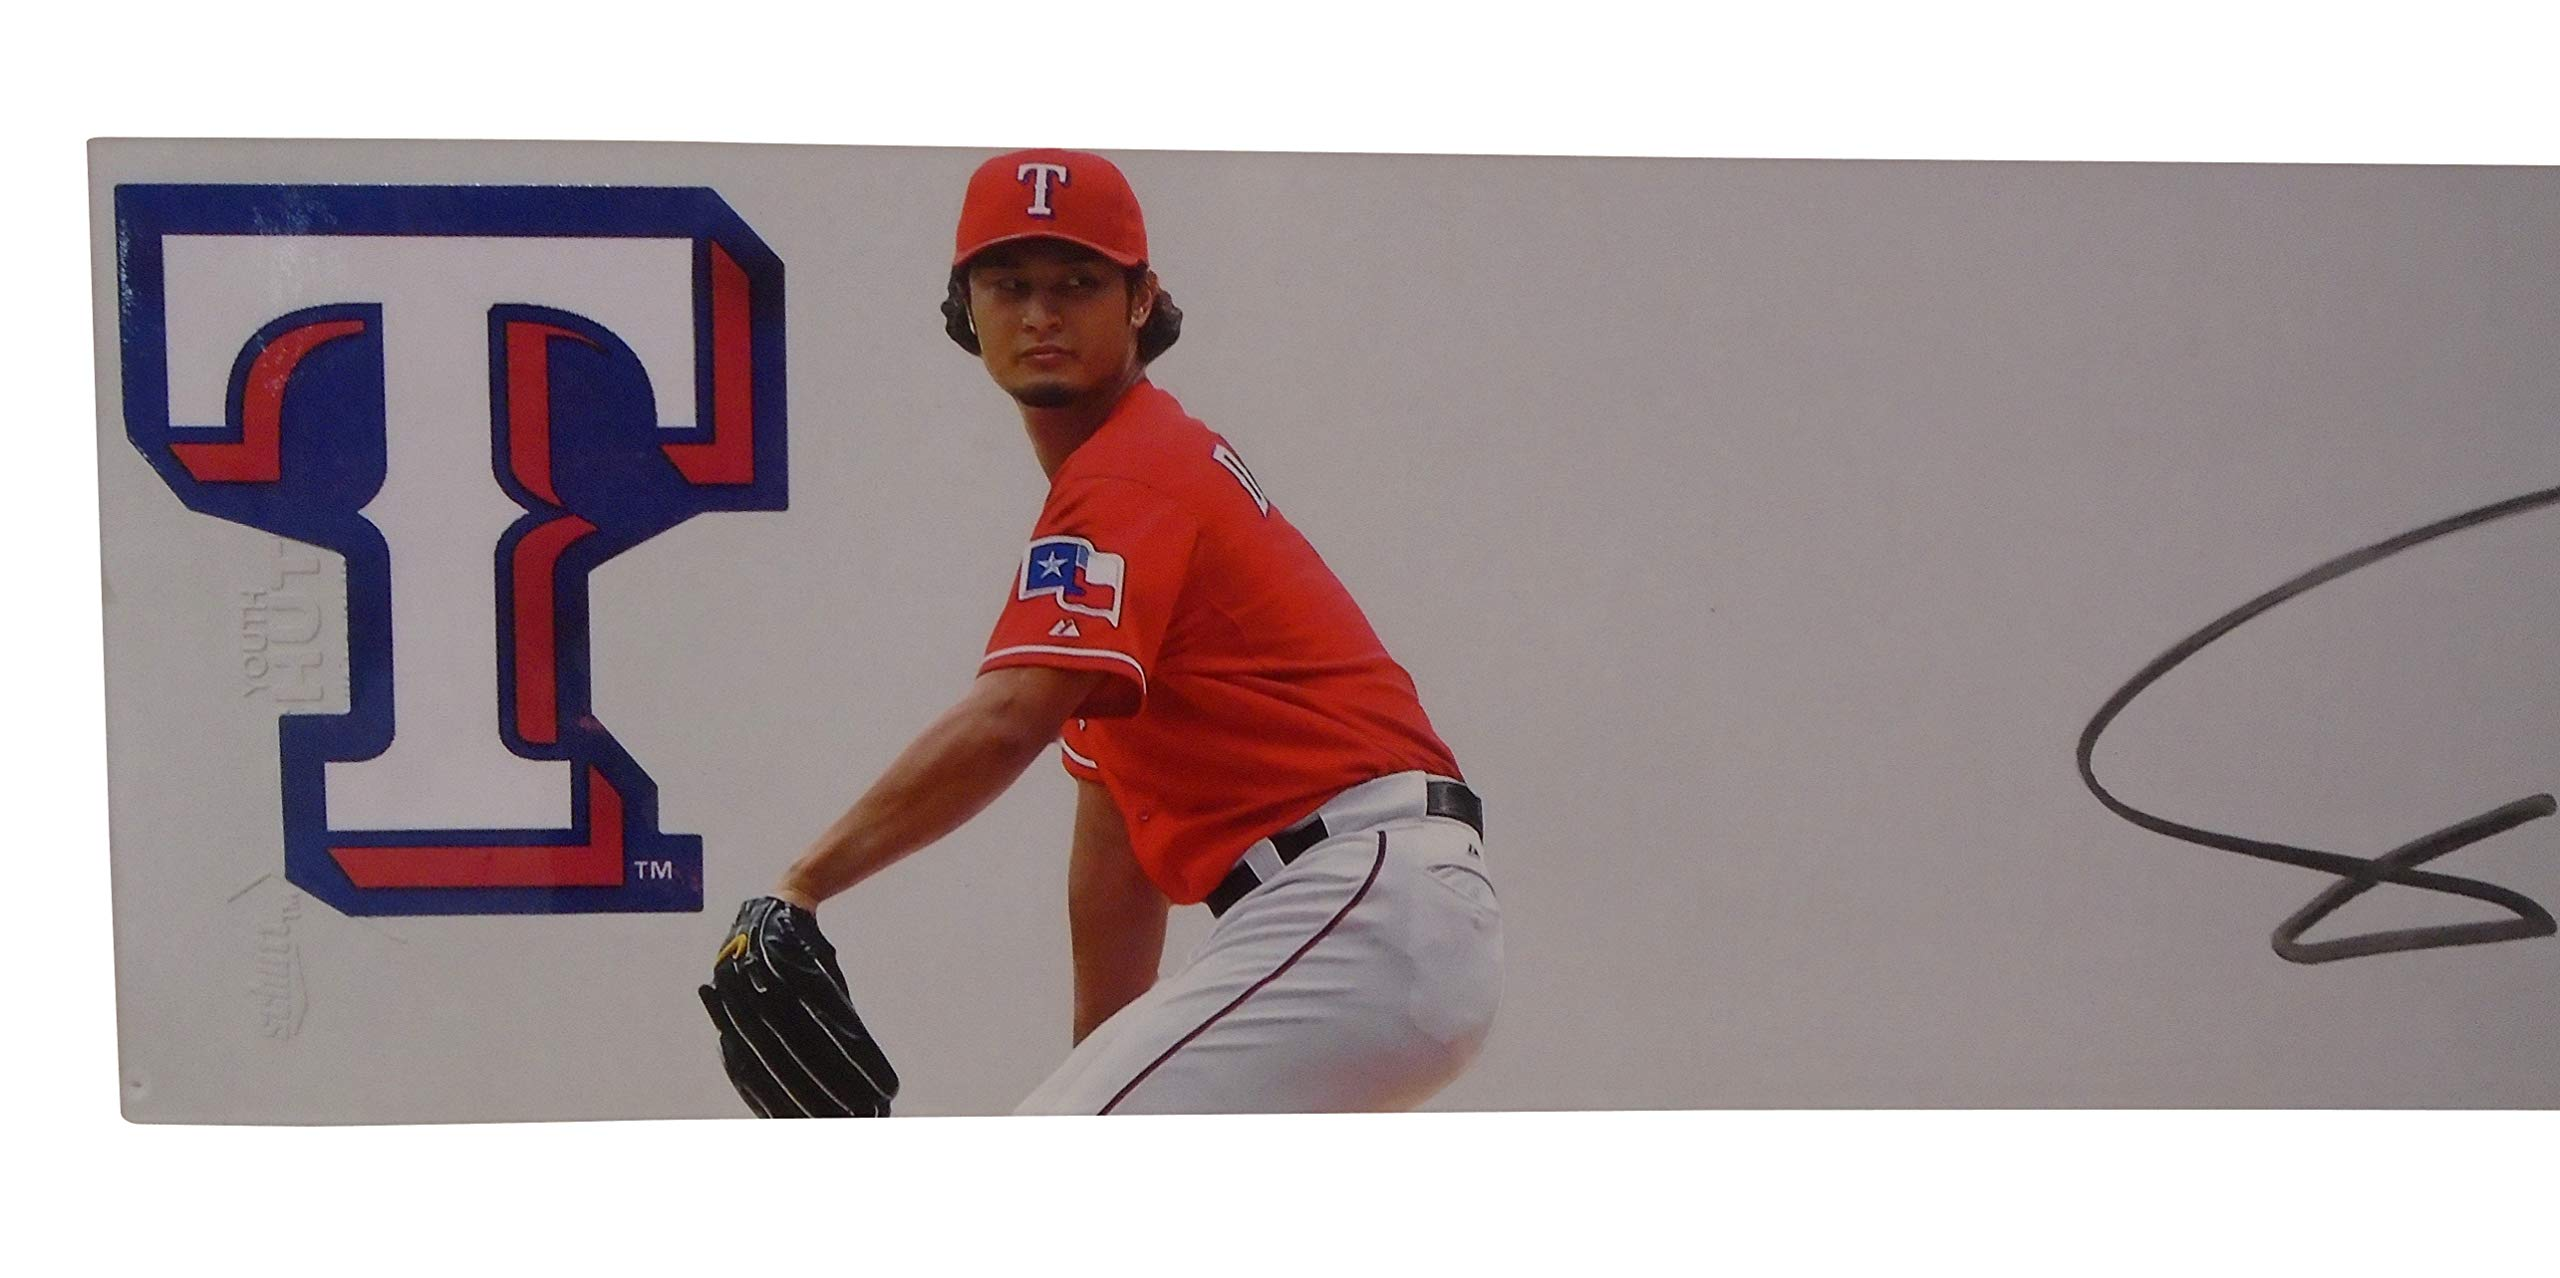 Texas Rangers Yu Darvish Autographed Hand Signed Photo Schutt Baseball Pitching Rubber with Proof Photo of Signing and COA, Hokkaido Nippon Ham Fighters